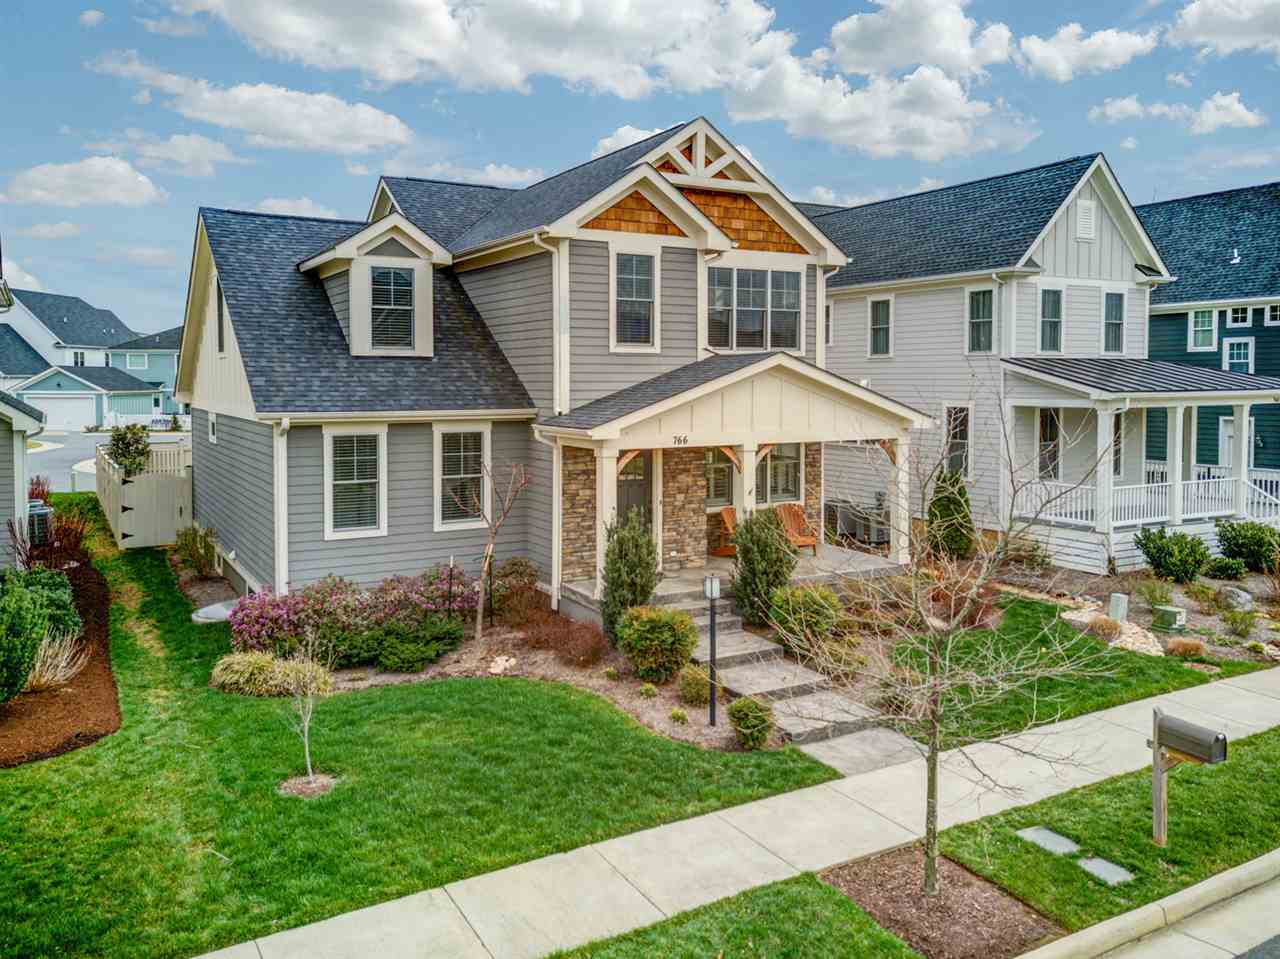 $675,000 - 5Br/4Ba -  for Sale in Old Trail, Crozet